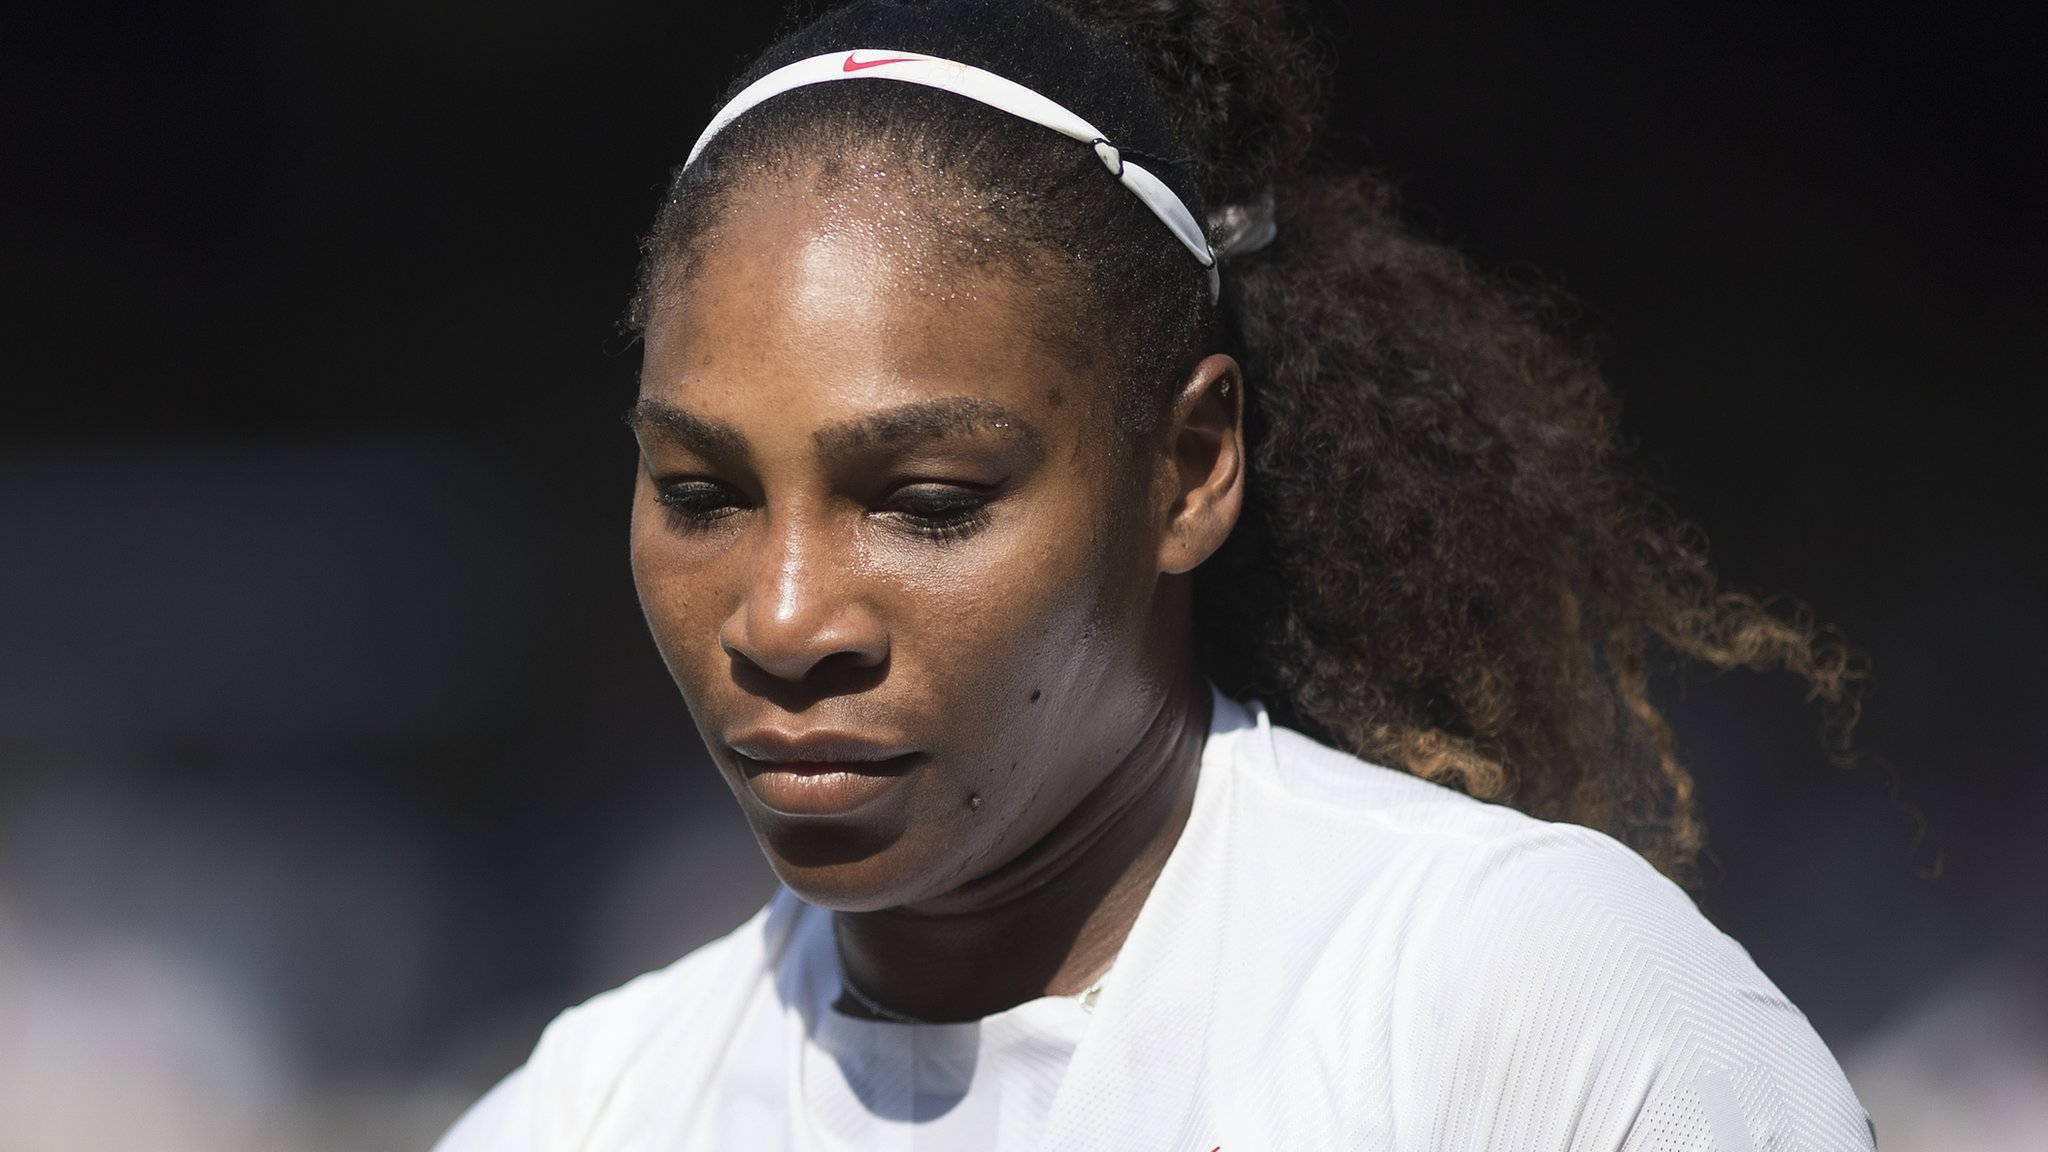 Serena Williams pulls out of Rogers Cup for personal reasons